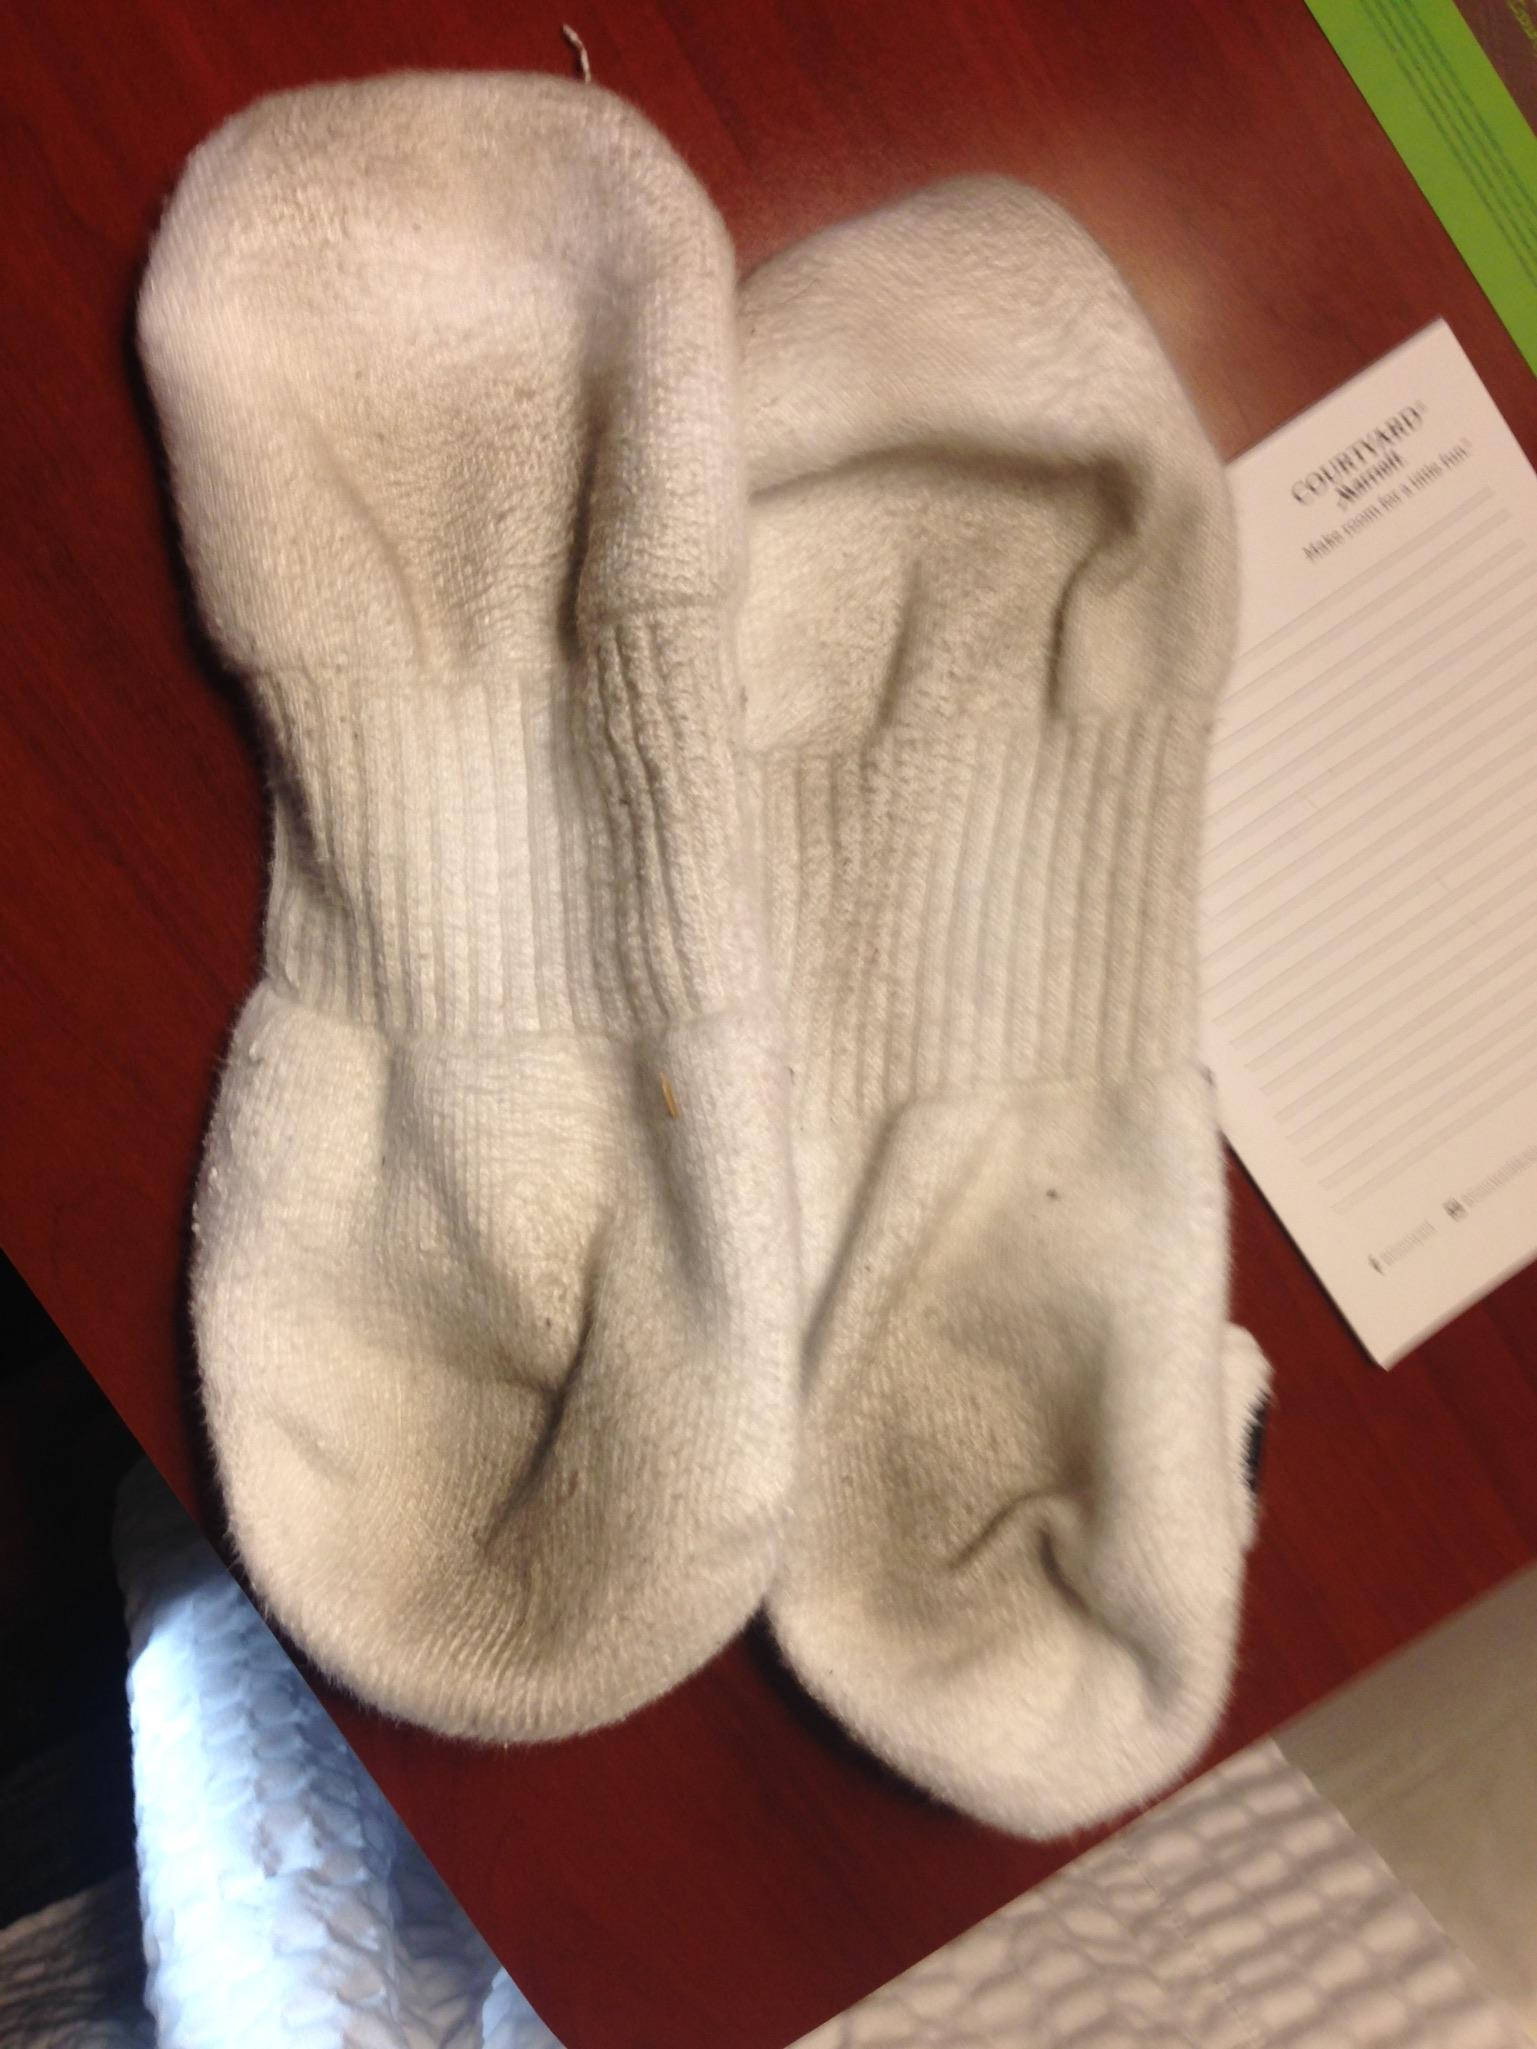 My sox after making coffee shoeless in my room